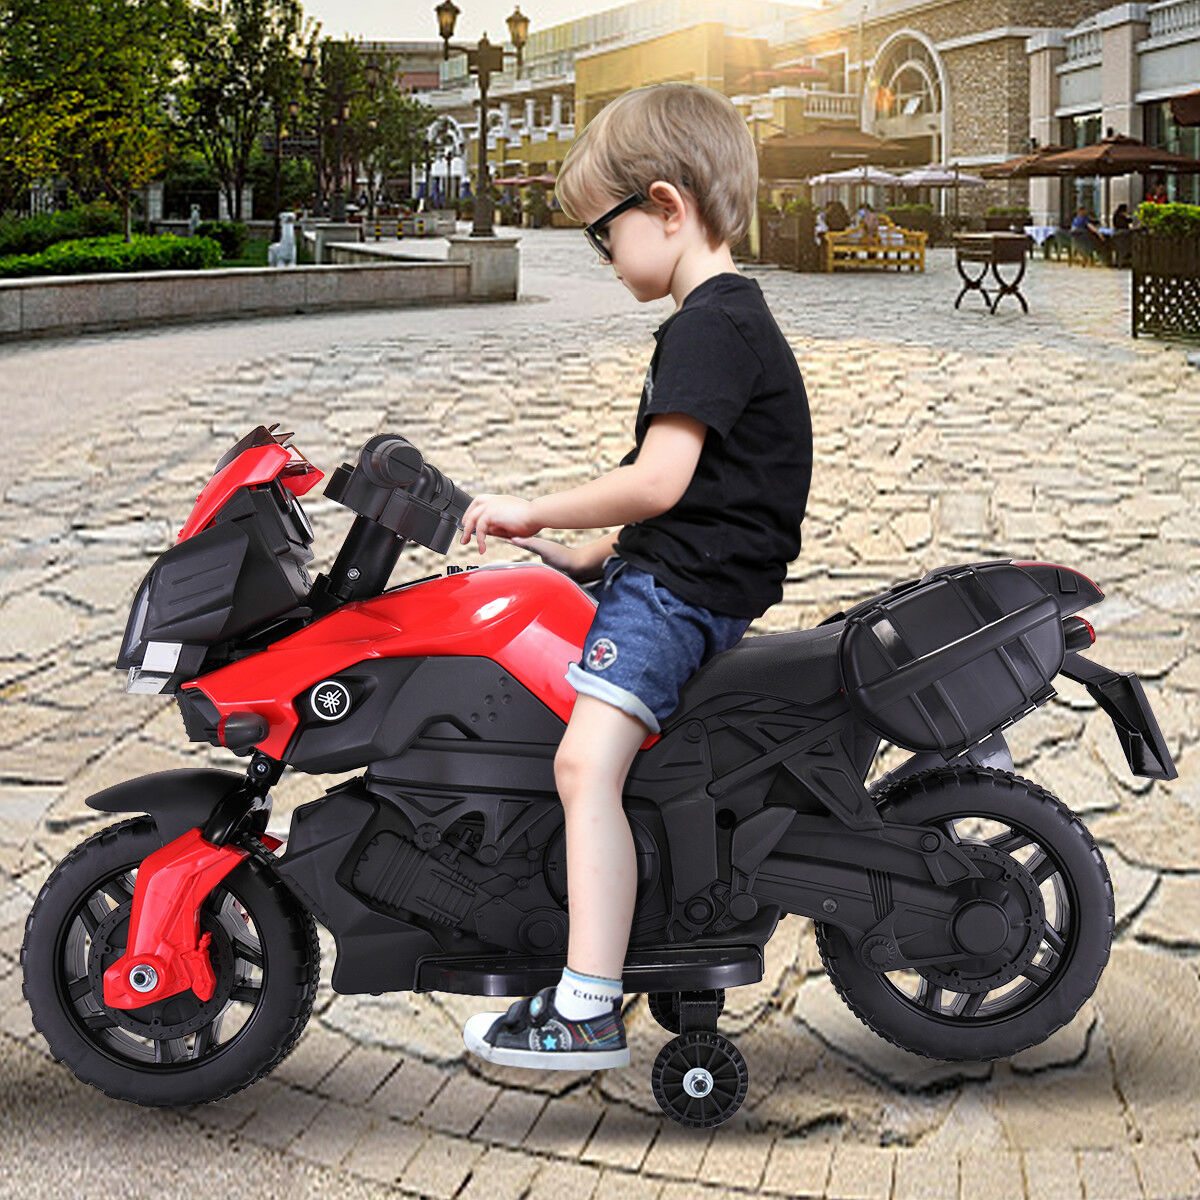 6V Kids Ride On Motorcycle Battery Powered 4 Wheel Car Bicyc